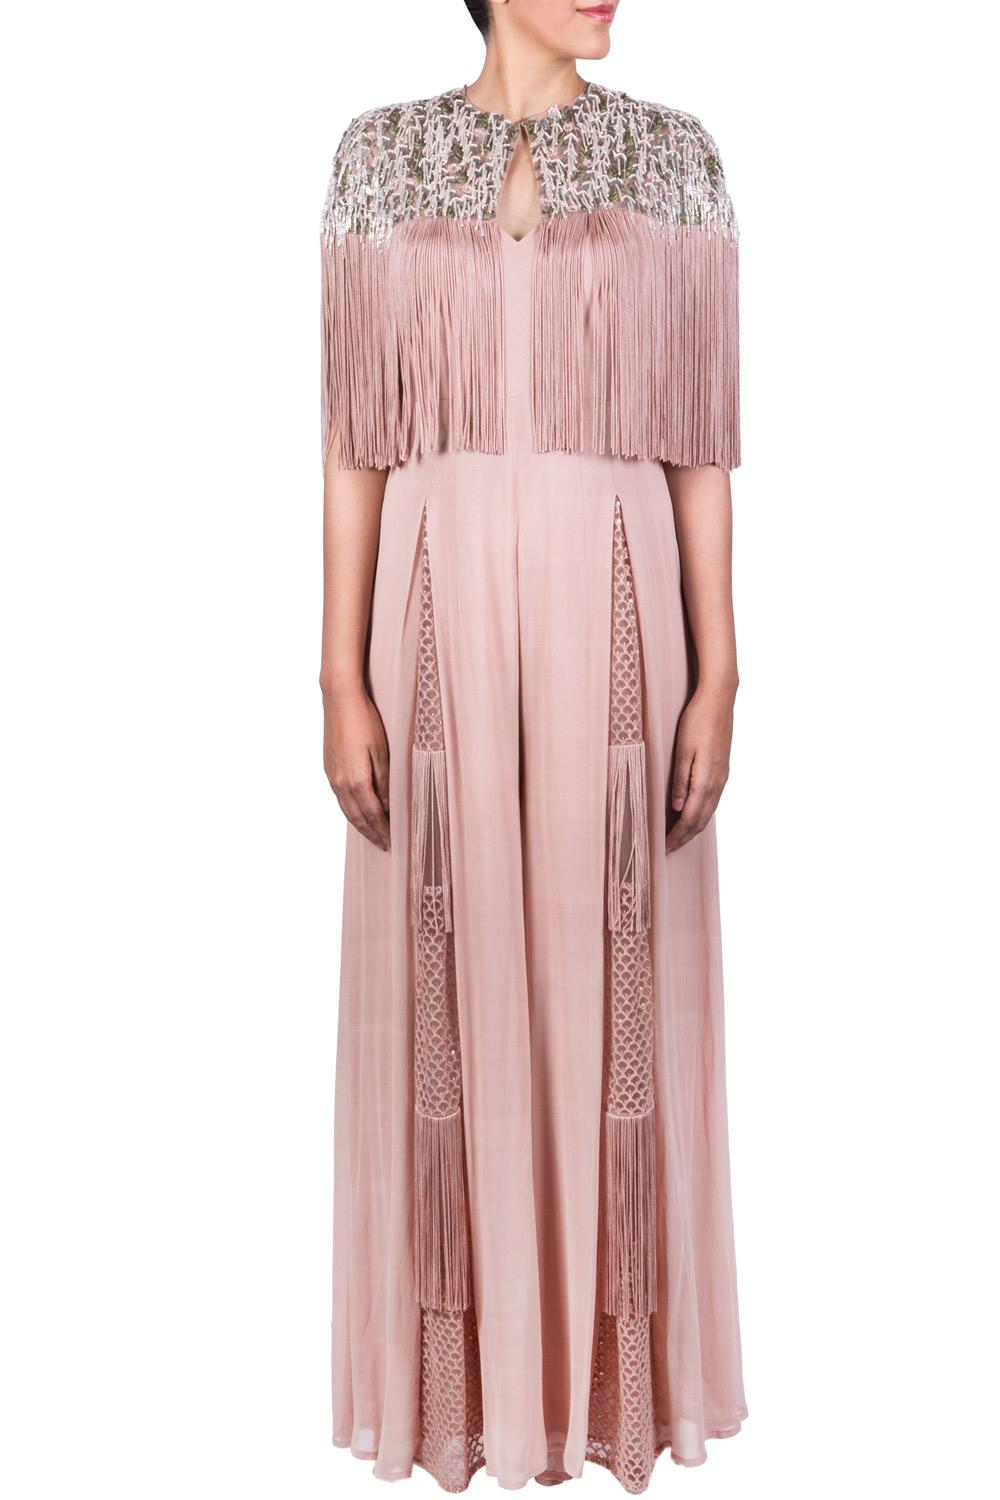 083a8eafd82 Blush pink fringe jumpsuit with cape by Ridhima Bhasin